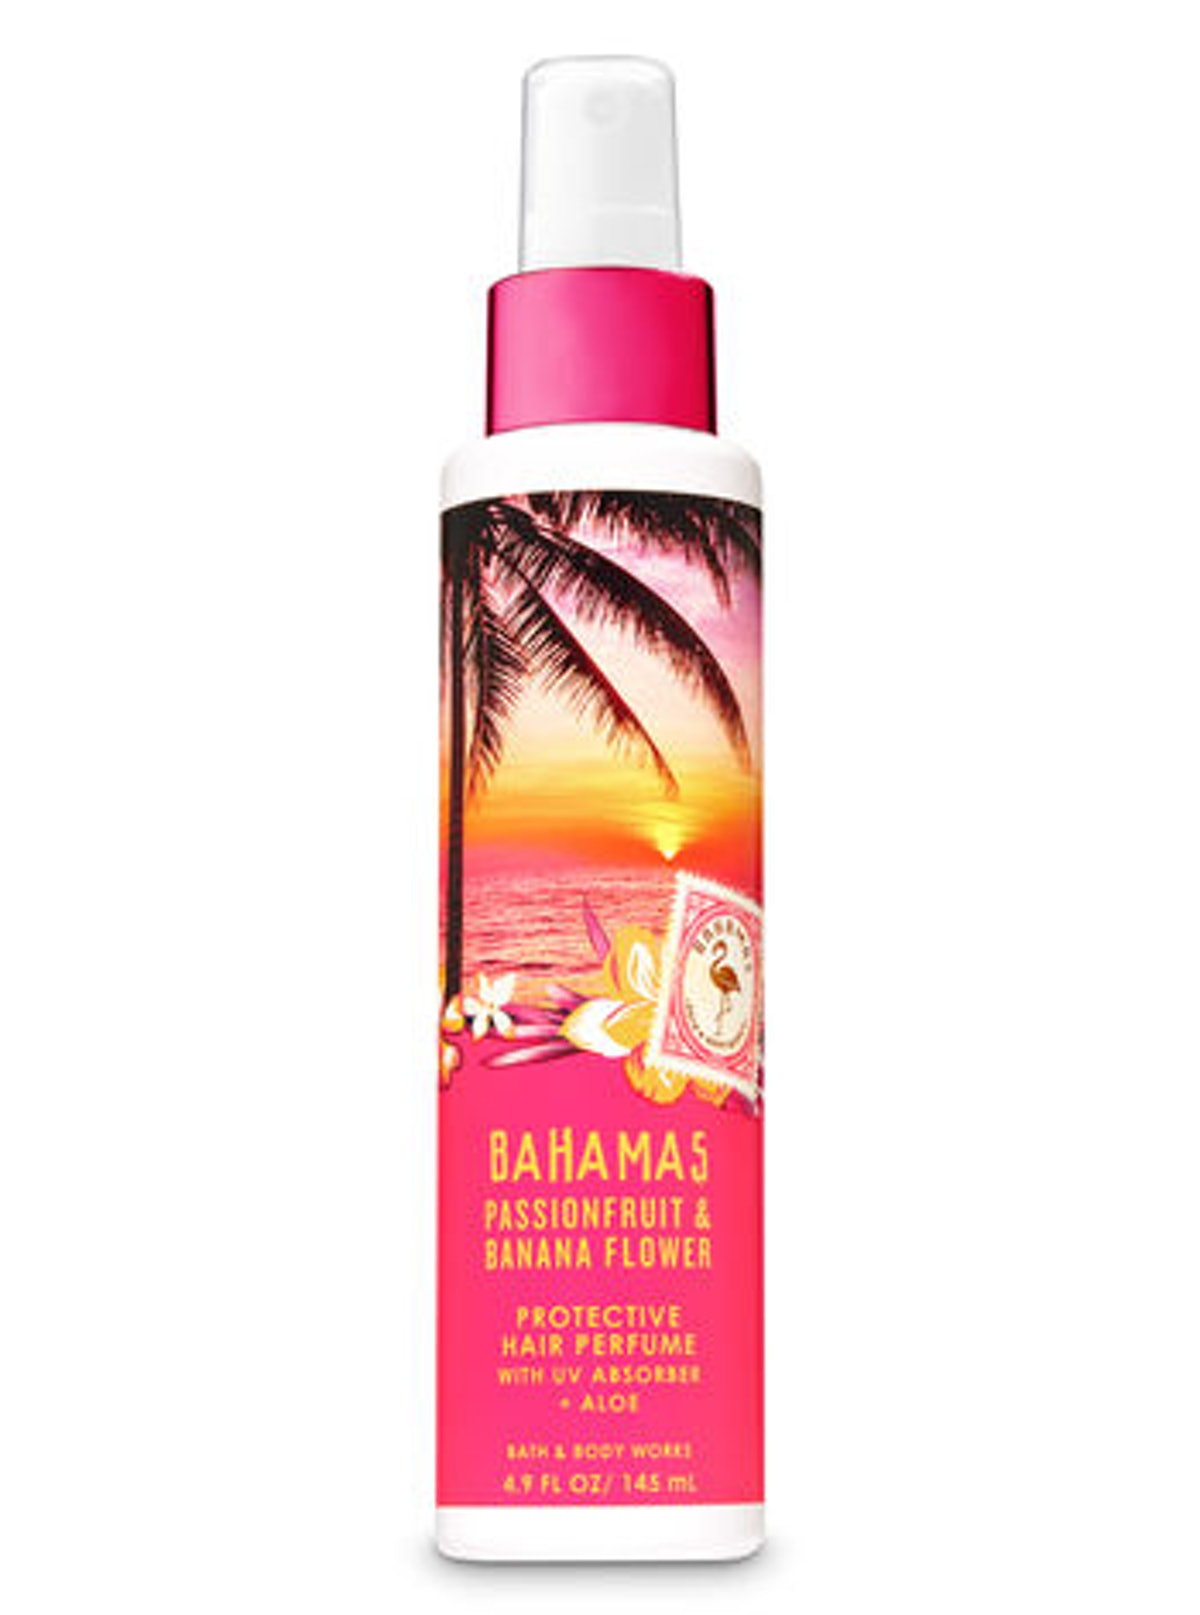 PINK PASSIONFRUIT & BANANA FLOWER Protective Hair Perfume